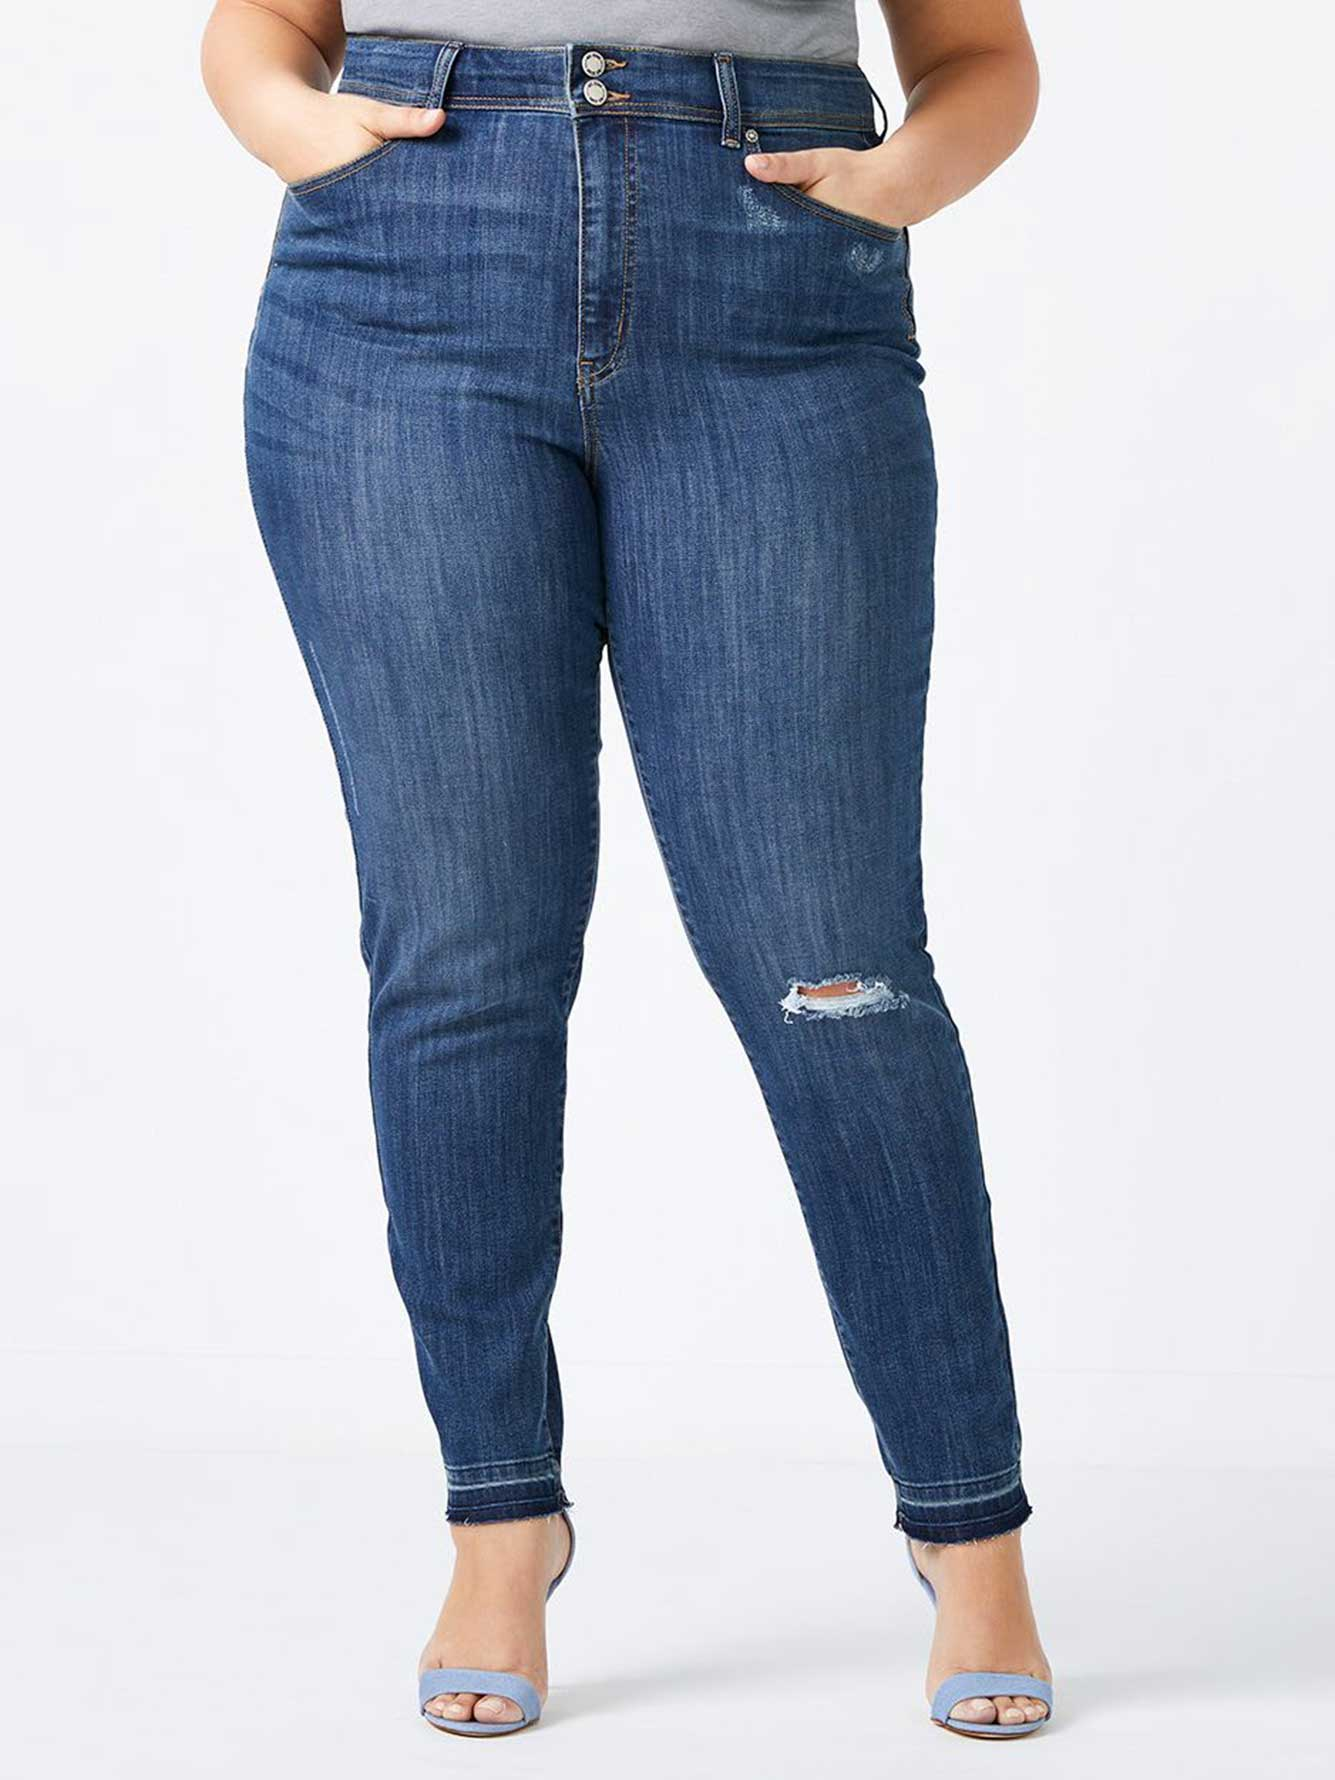 Plus Size Jeans: Skinny, High Waisted & More Update your denim collection with our wide array of plus size jeans from Belk. Made with stretch fabrics and form-fitting details, our jeans are the ultimate blend of comfort and style.